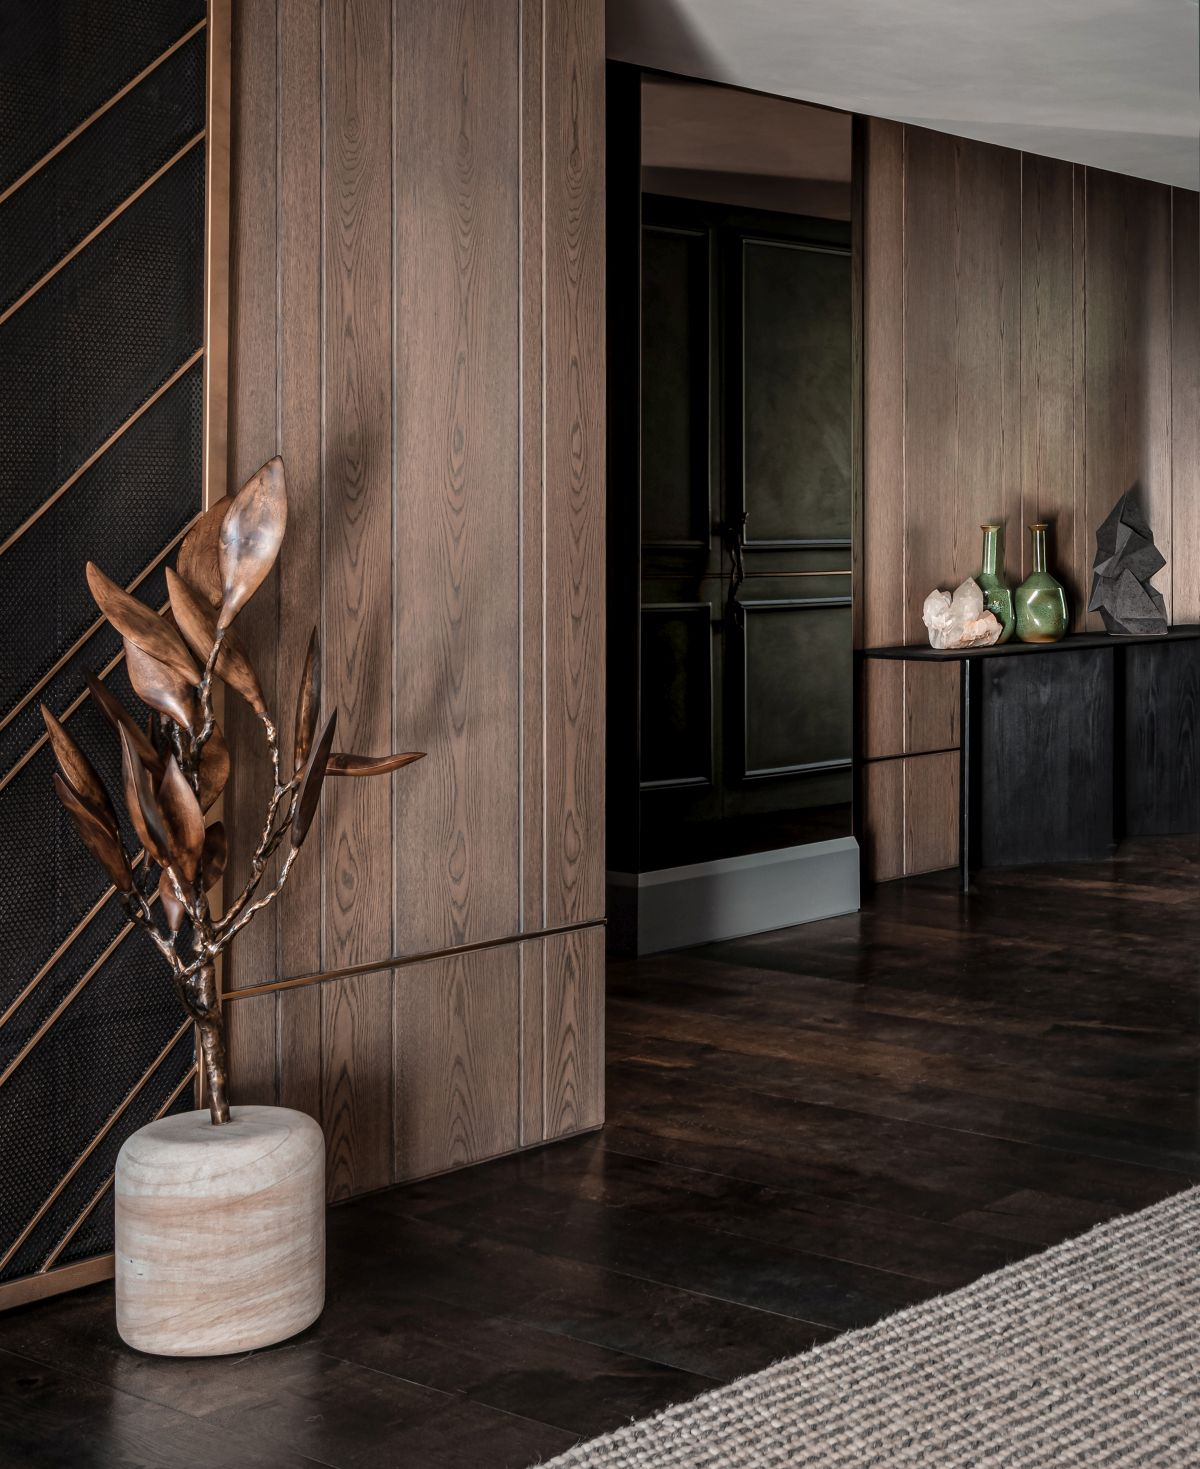 Beautiful natural wood is used extensively throughout the interior in combination with refined accent materials